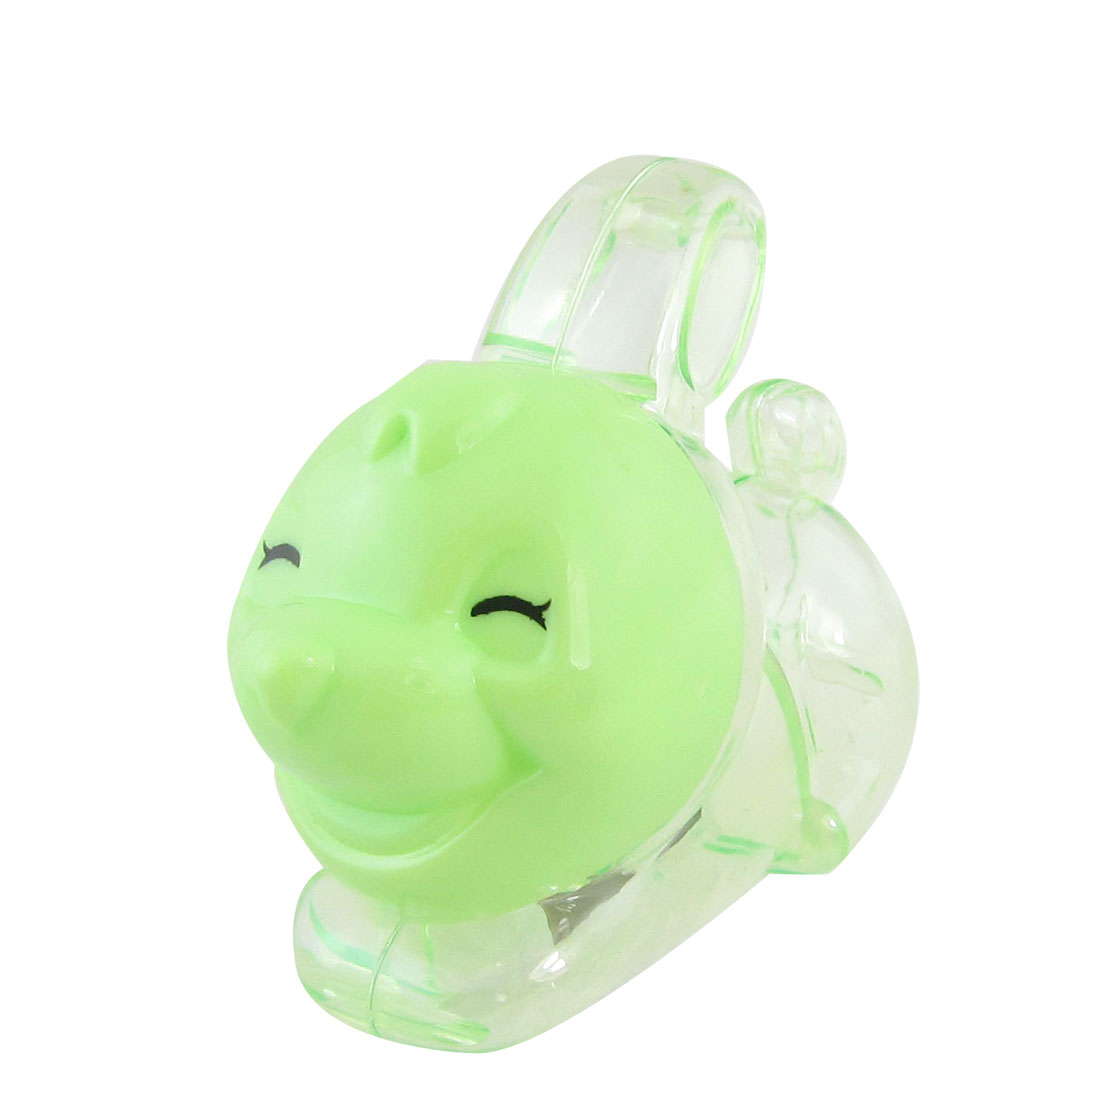 Green Plastic Double Hole Rabbit Shaped Pencil Sharpener for Students